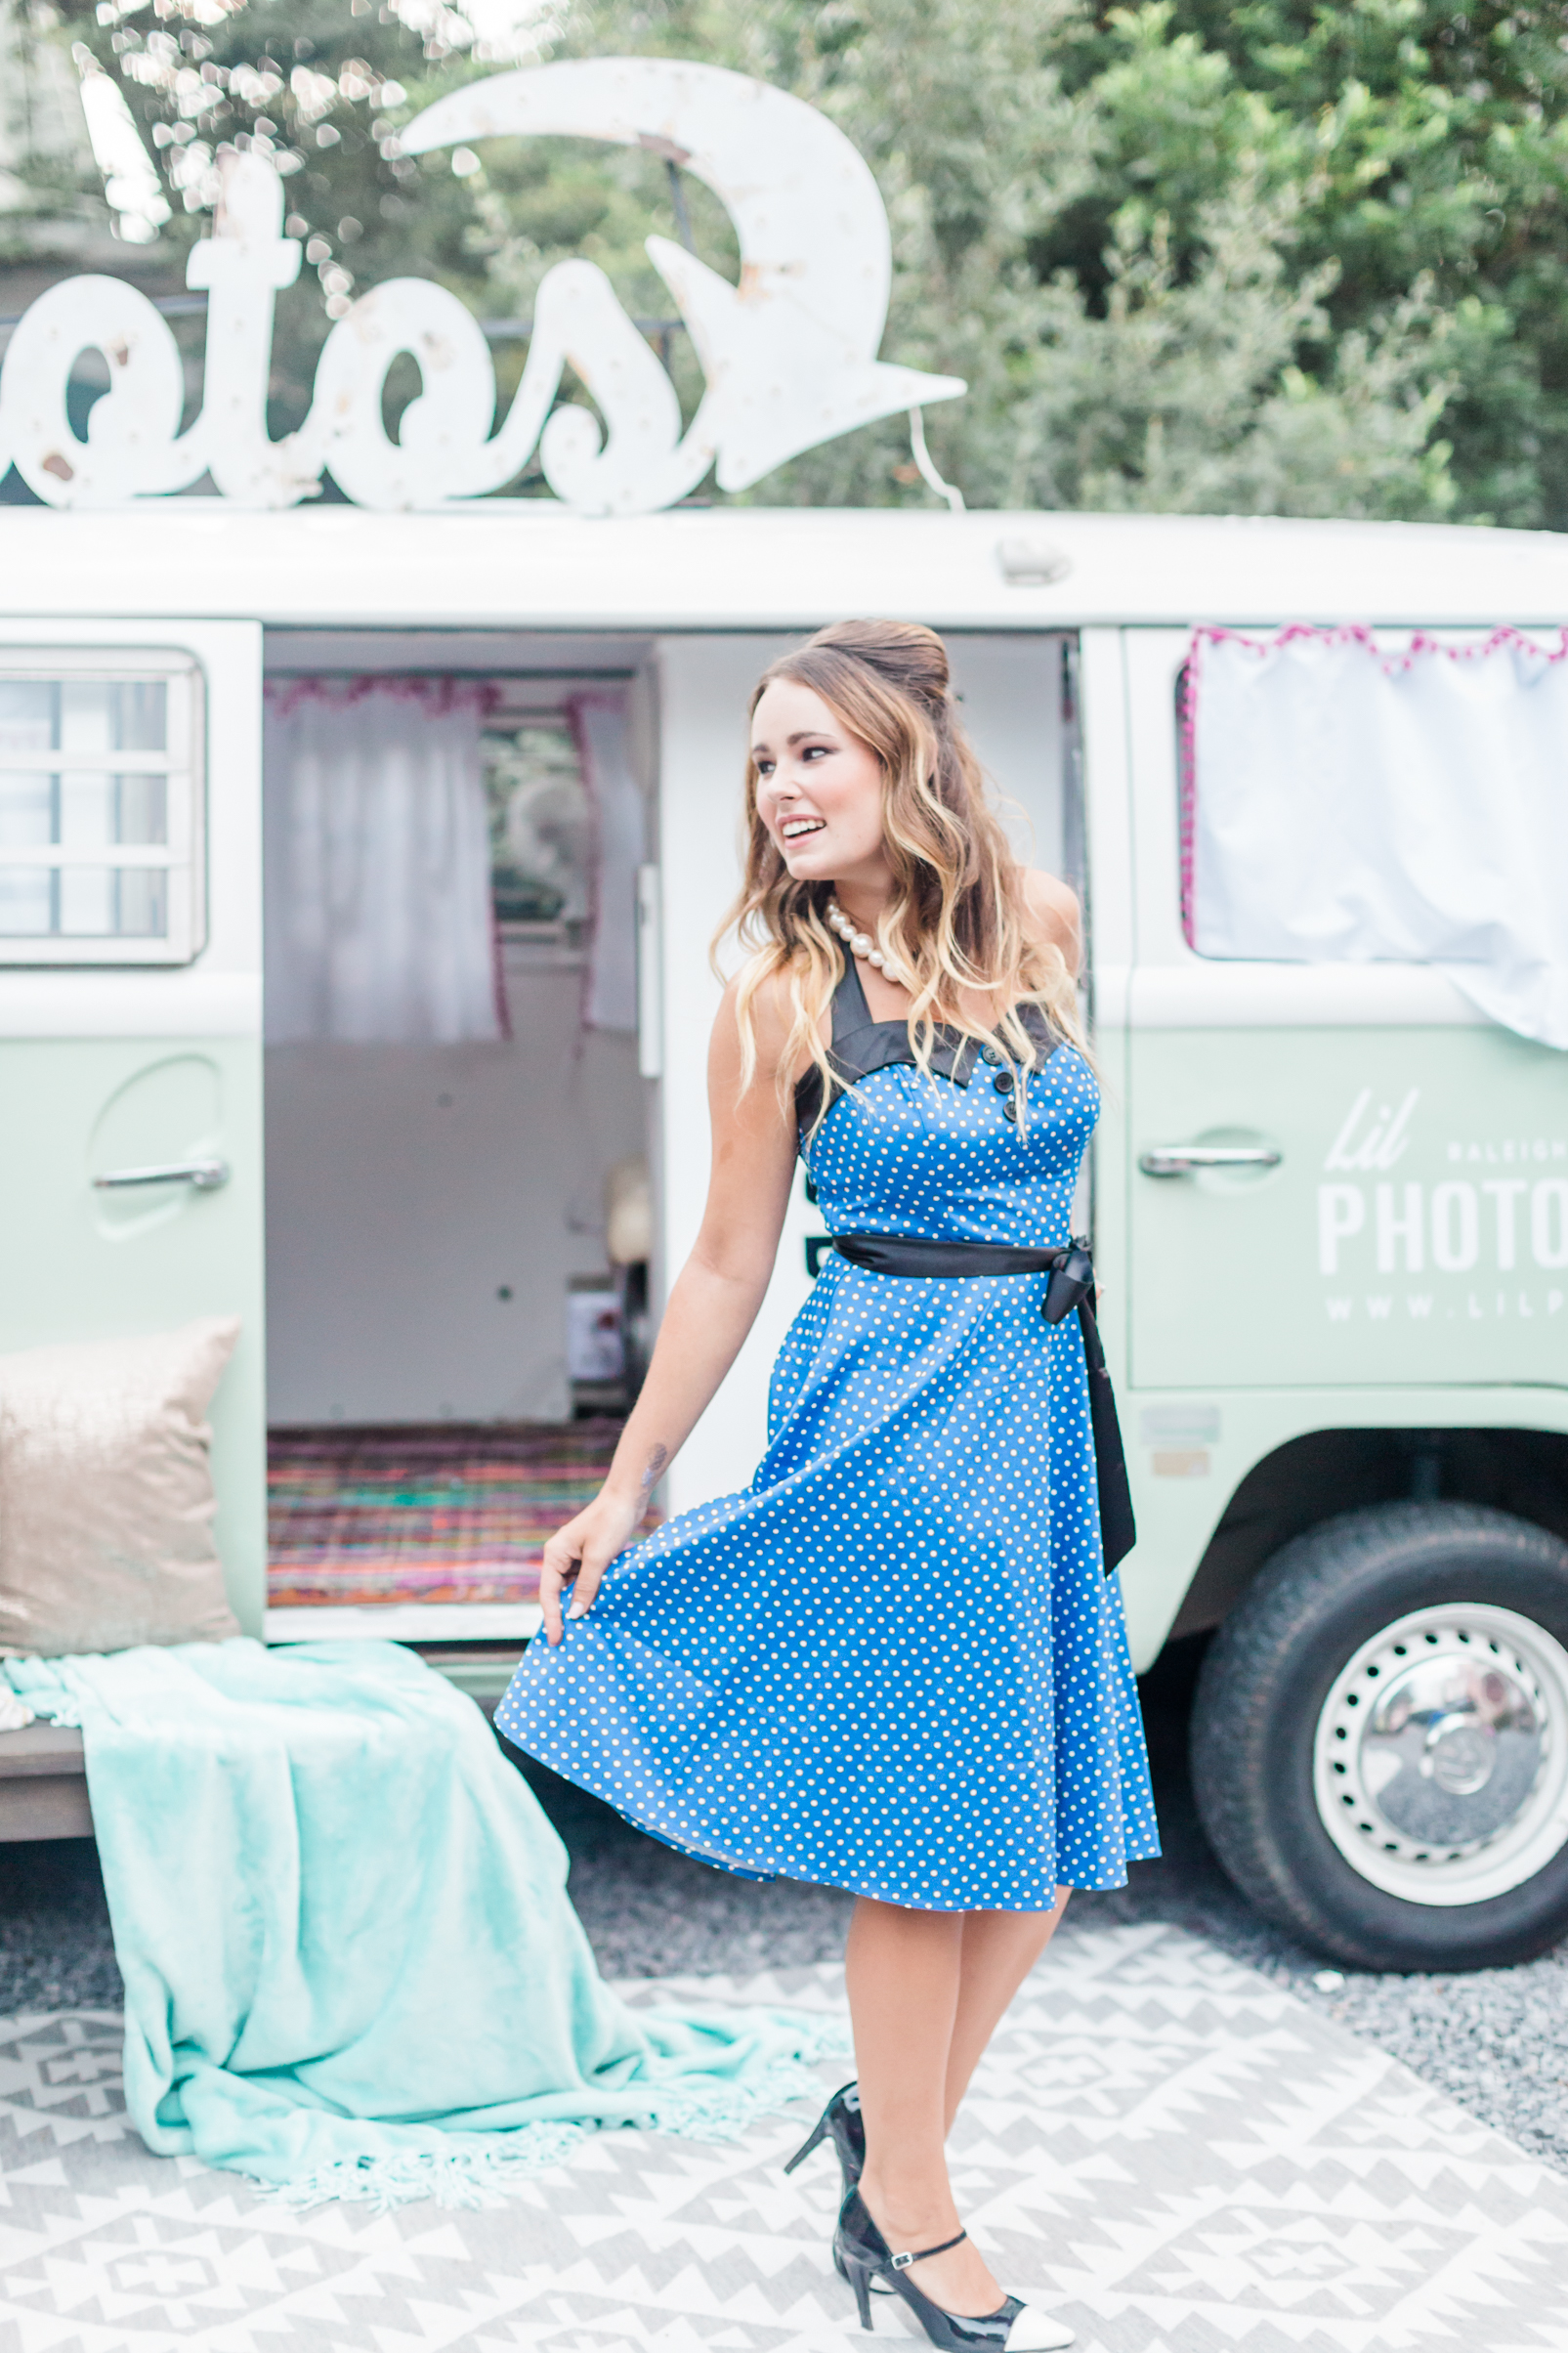 Model:  Jordan Blackwell  Planner/Designer:   Raise the Ruth Events   VW Bus:   Lil Photo Bus Co   Rentals:   MadHatter Vintage   Hair & Makeup Artist:   Natty Contrera Artistry